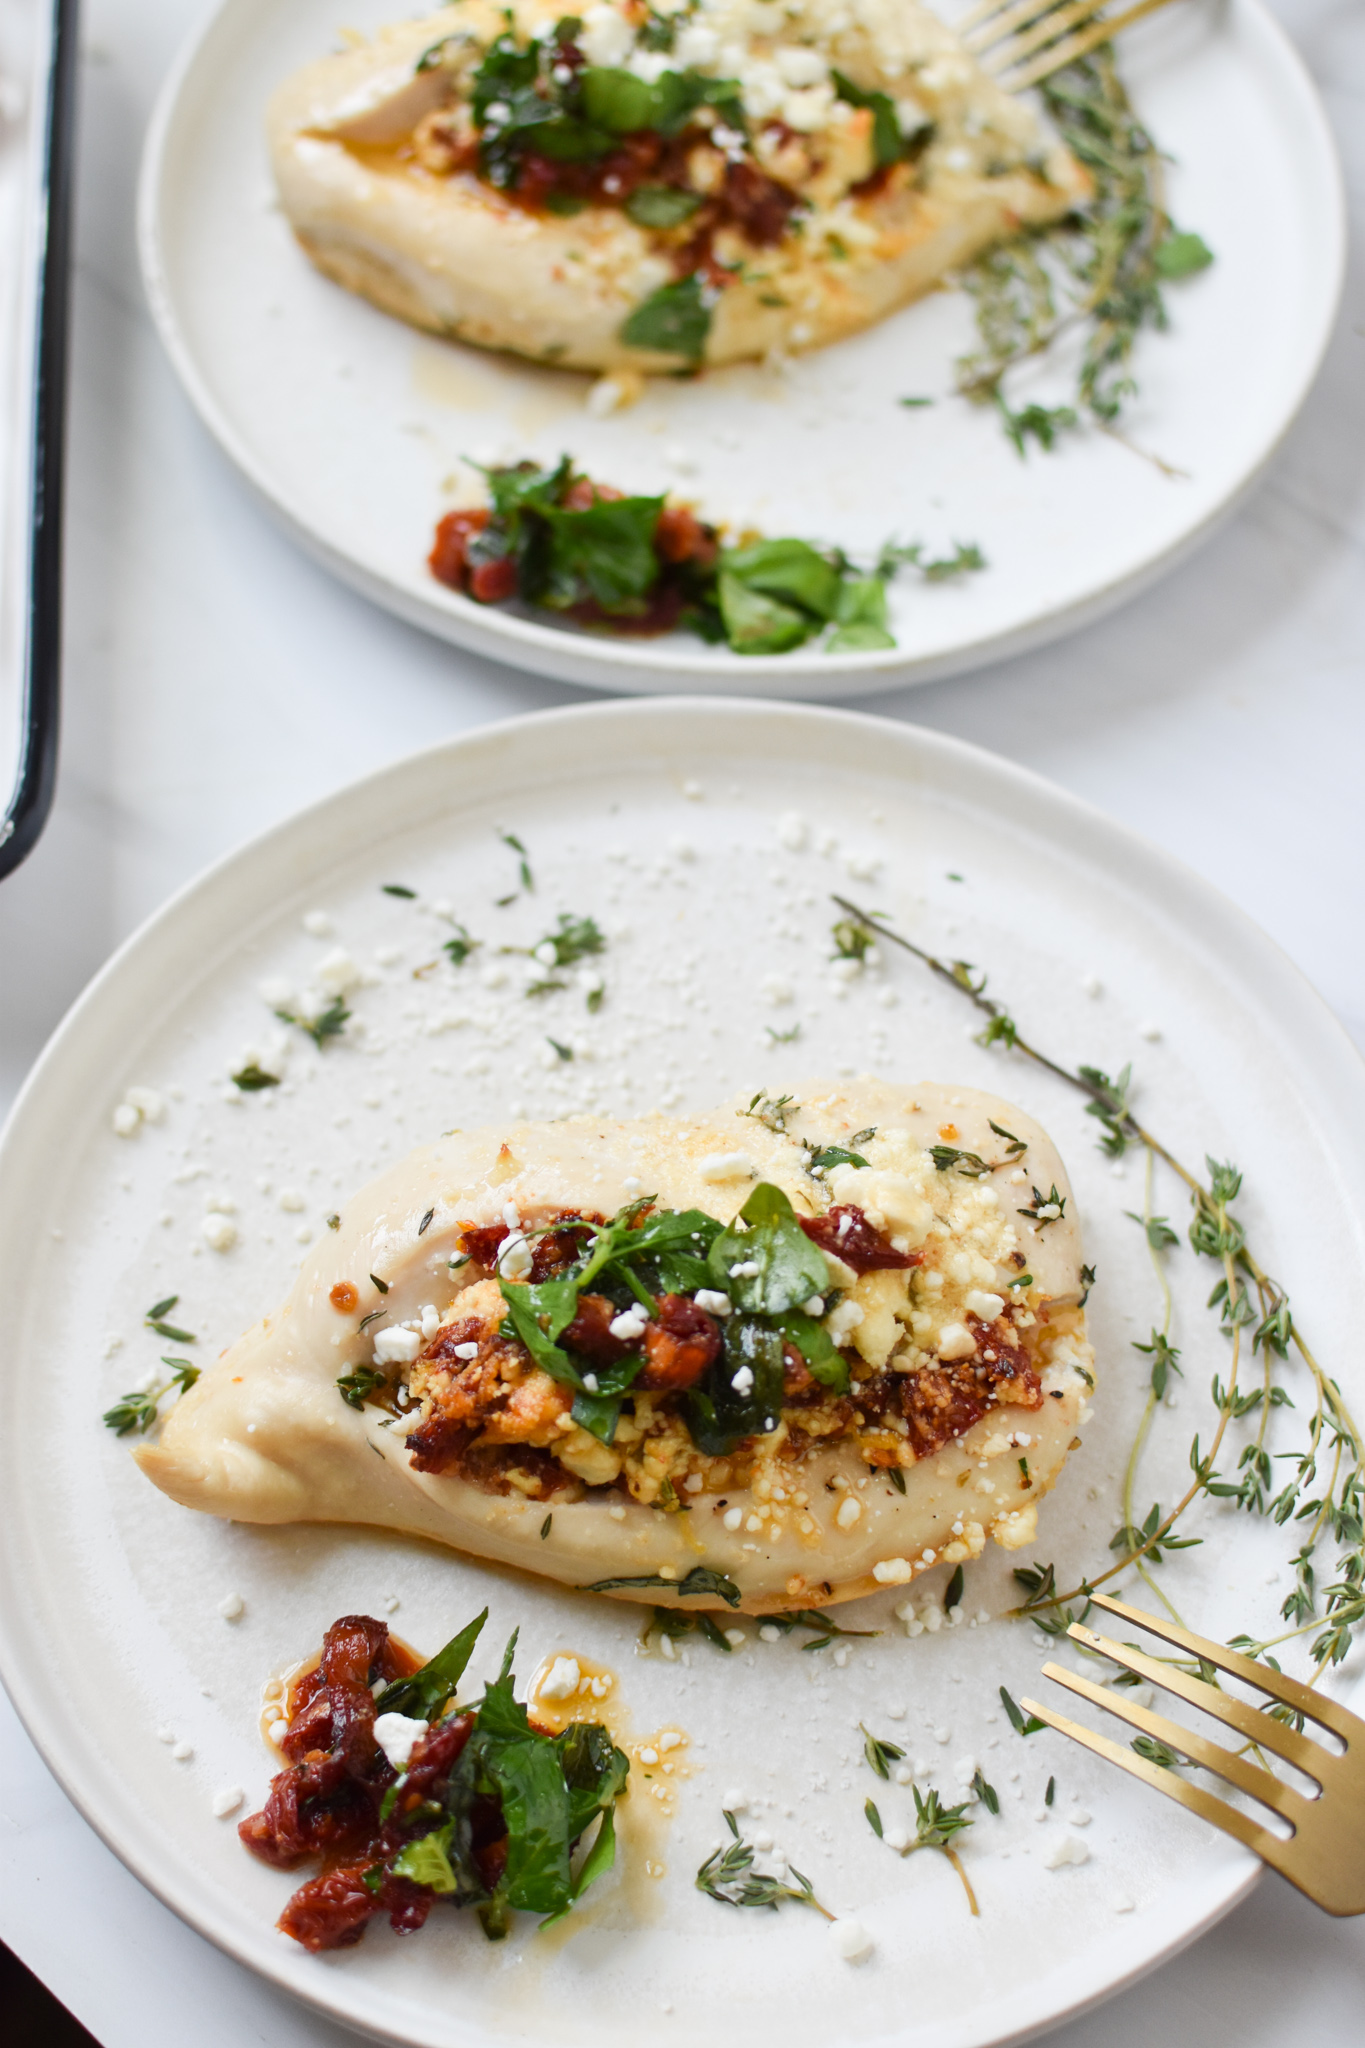 Sun-dried Tomato Goat Cheese Stuffed Chicken Breasts on white plate.